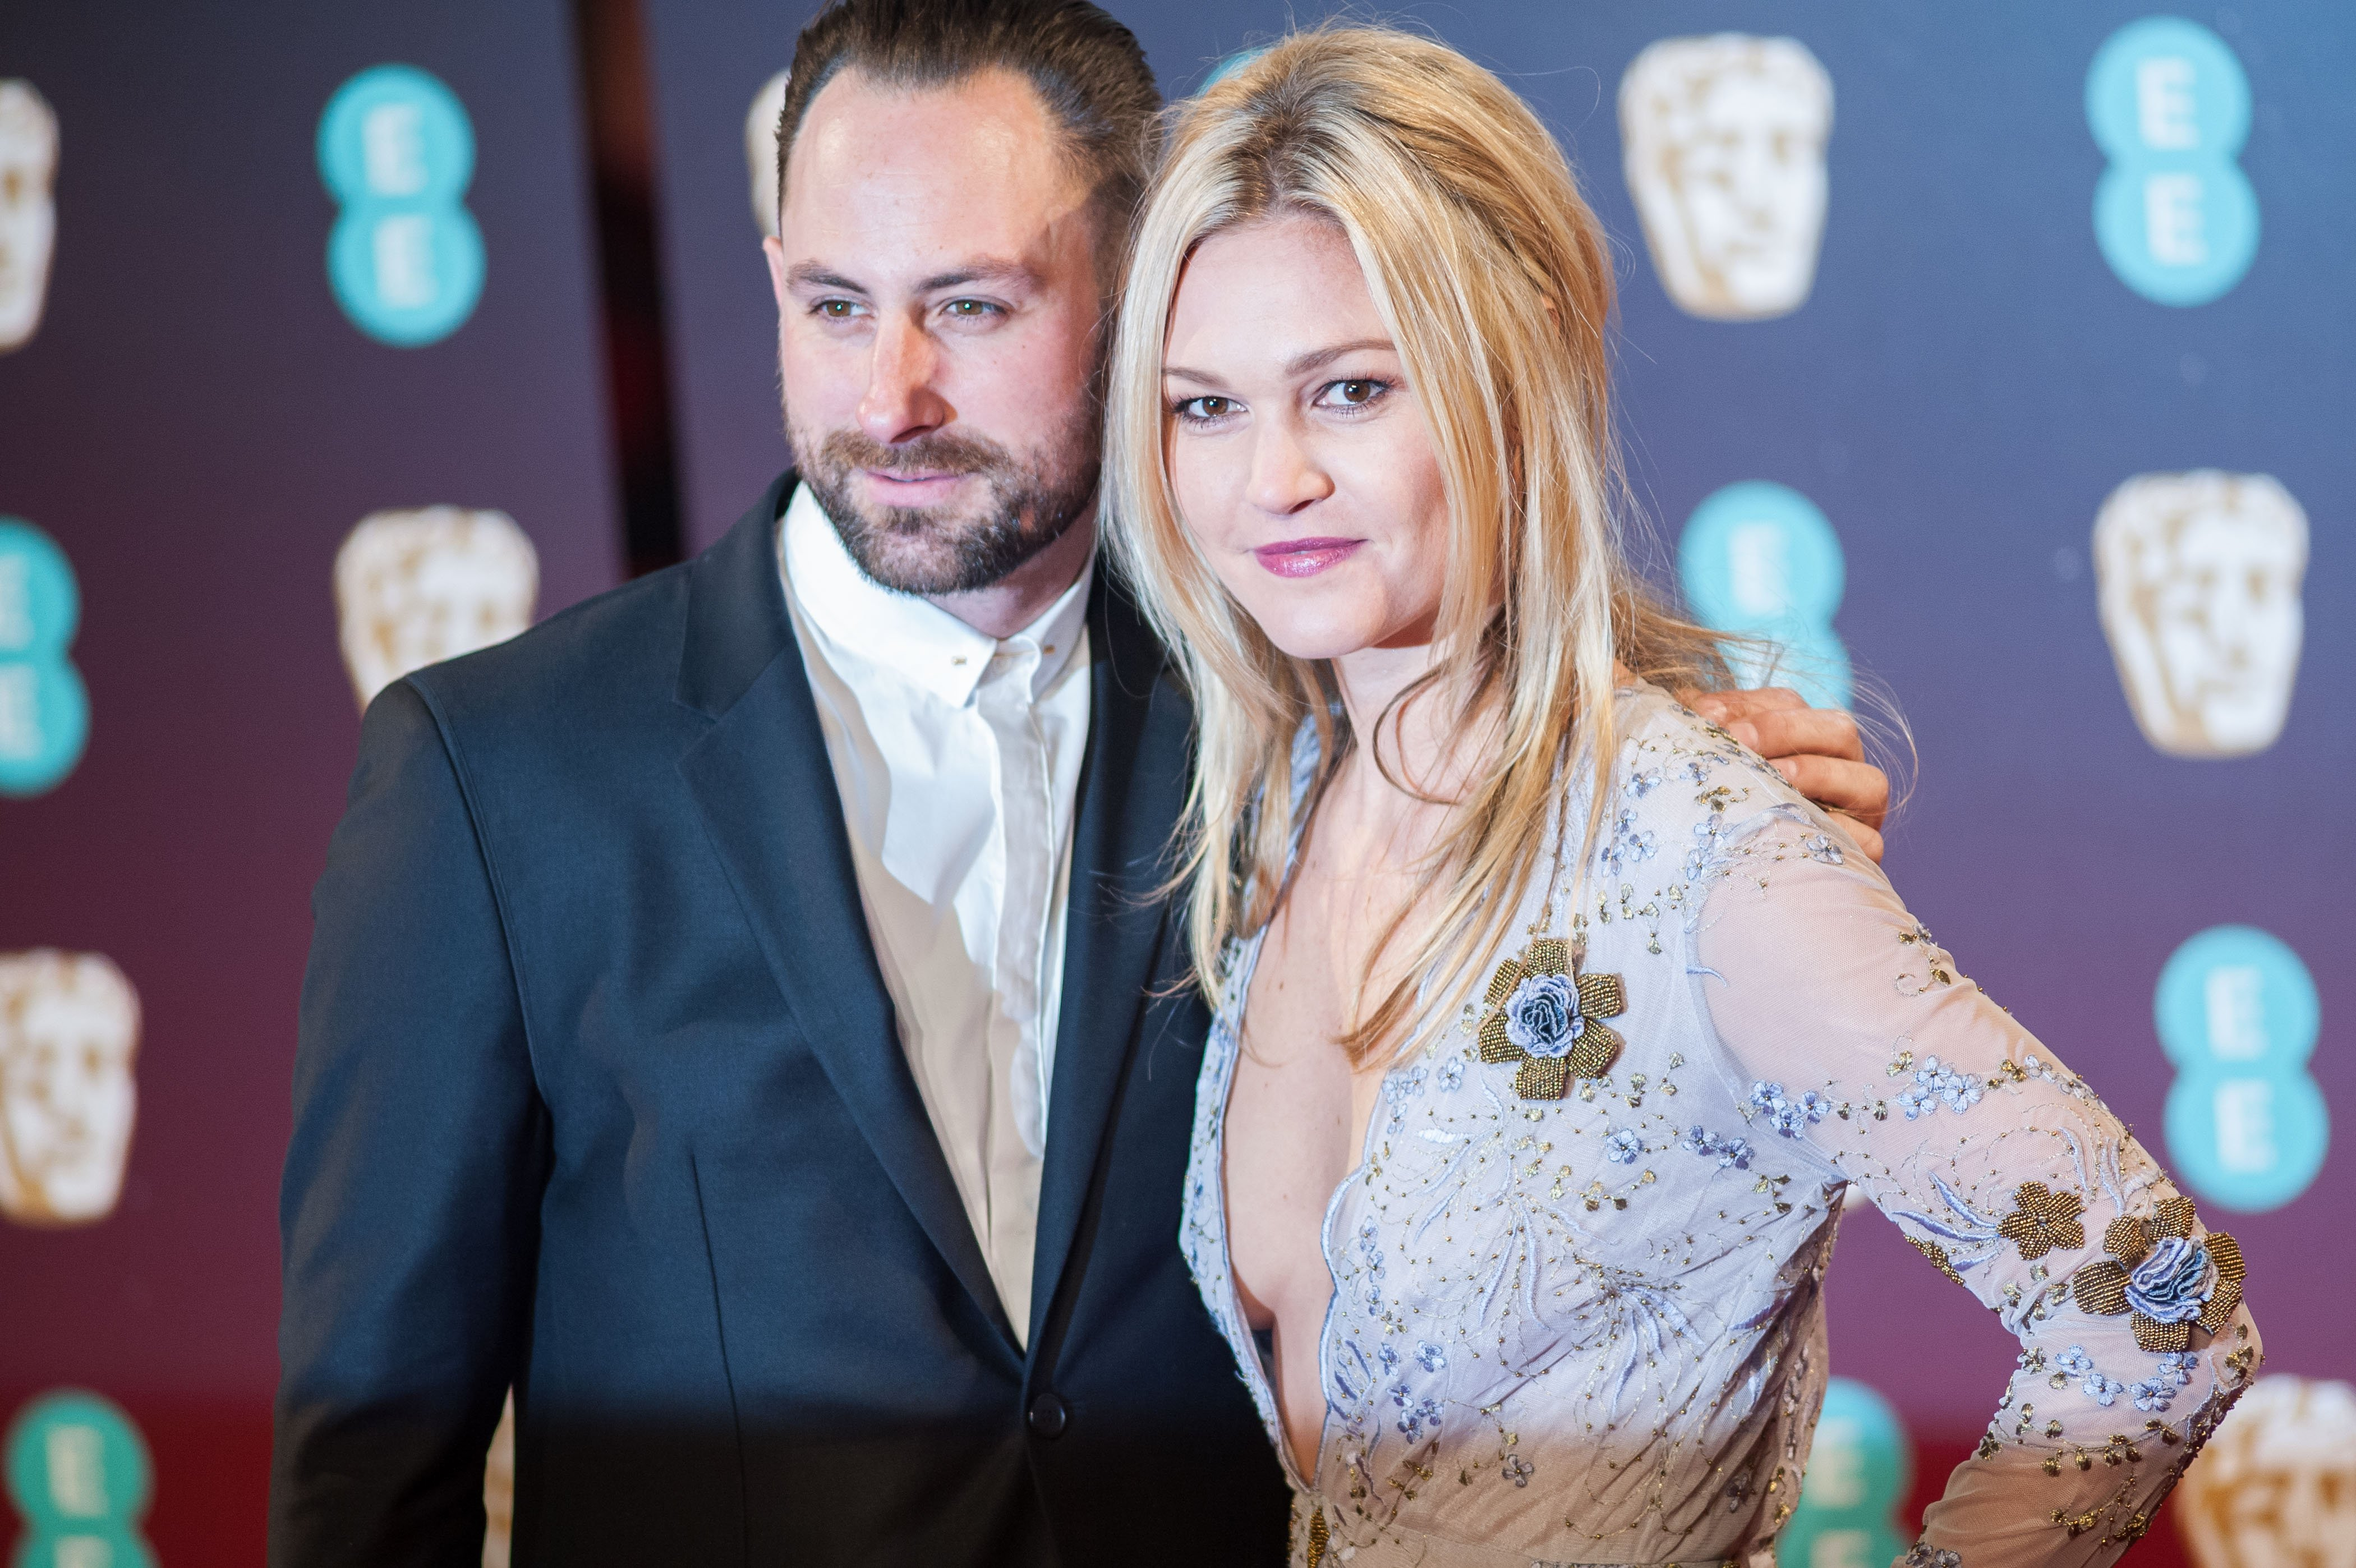 Preston J. Cook and Julia Stiles attend the 70th British Academy Film Awards ceremony at the Royal Albert Hall on February 12, 2017 in London